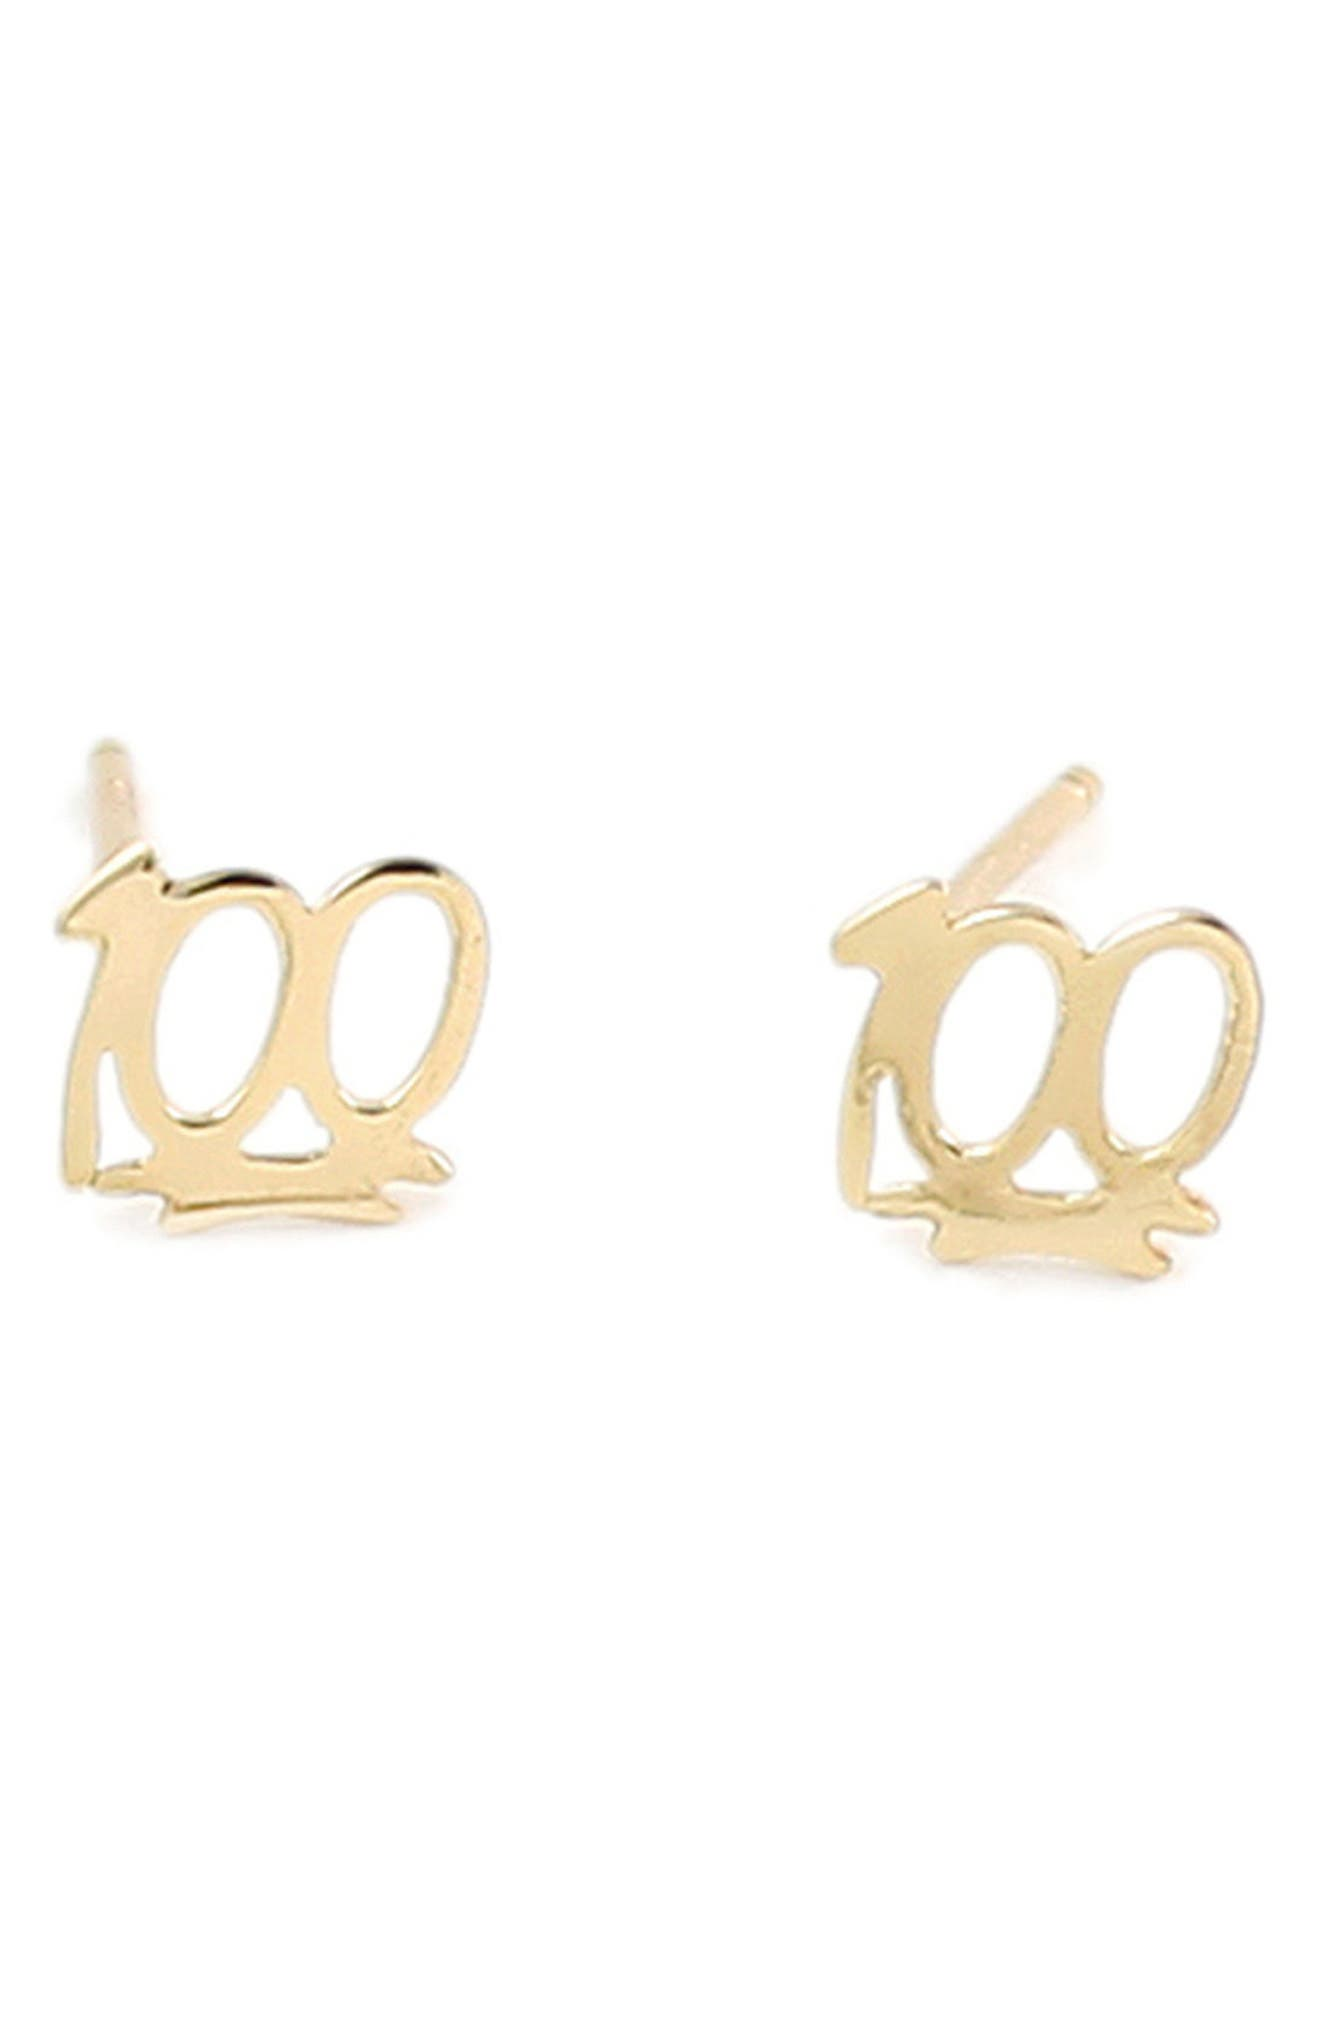 100 Stud Earrings,                         Main,                         color, Gold